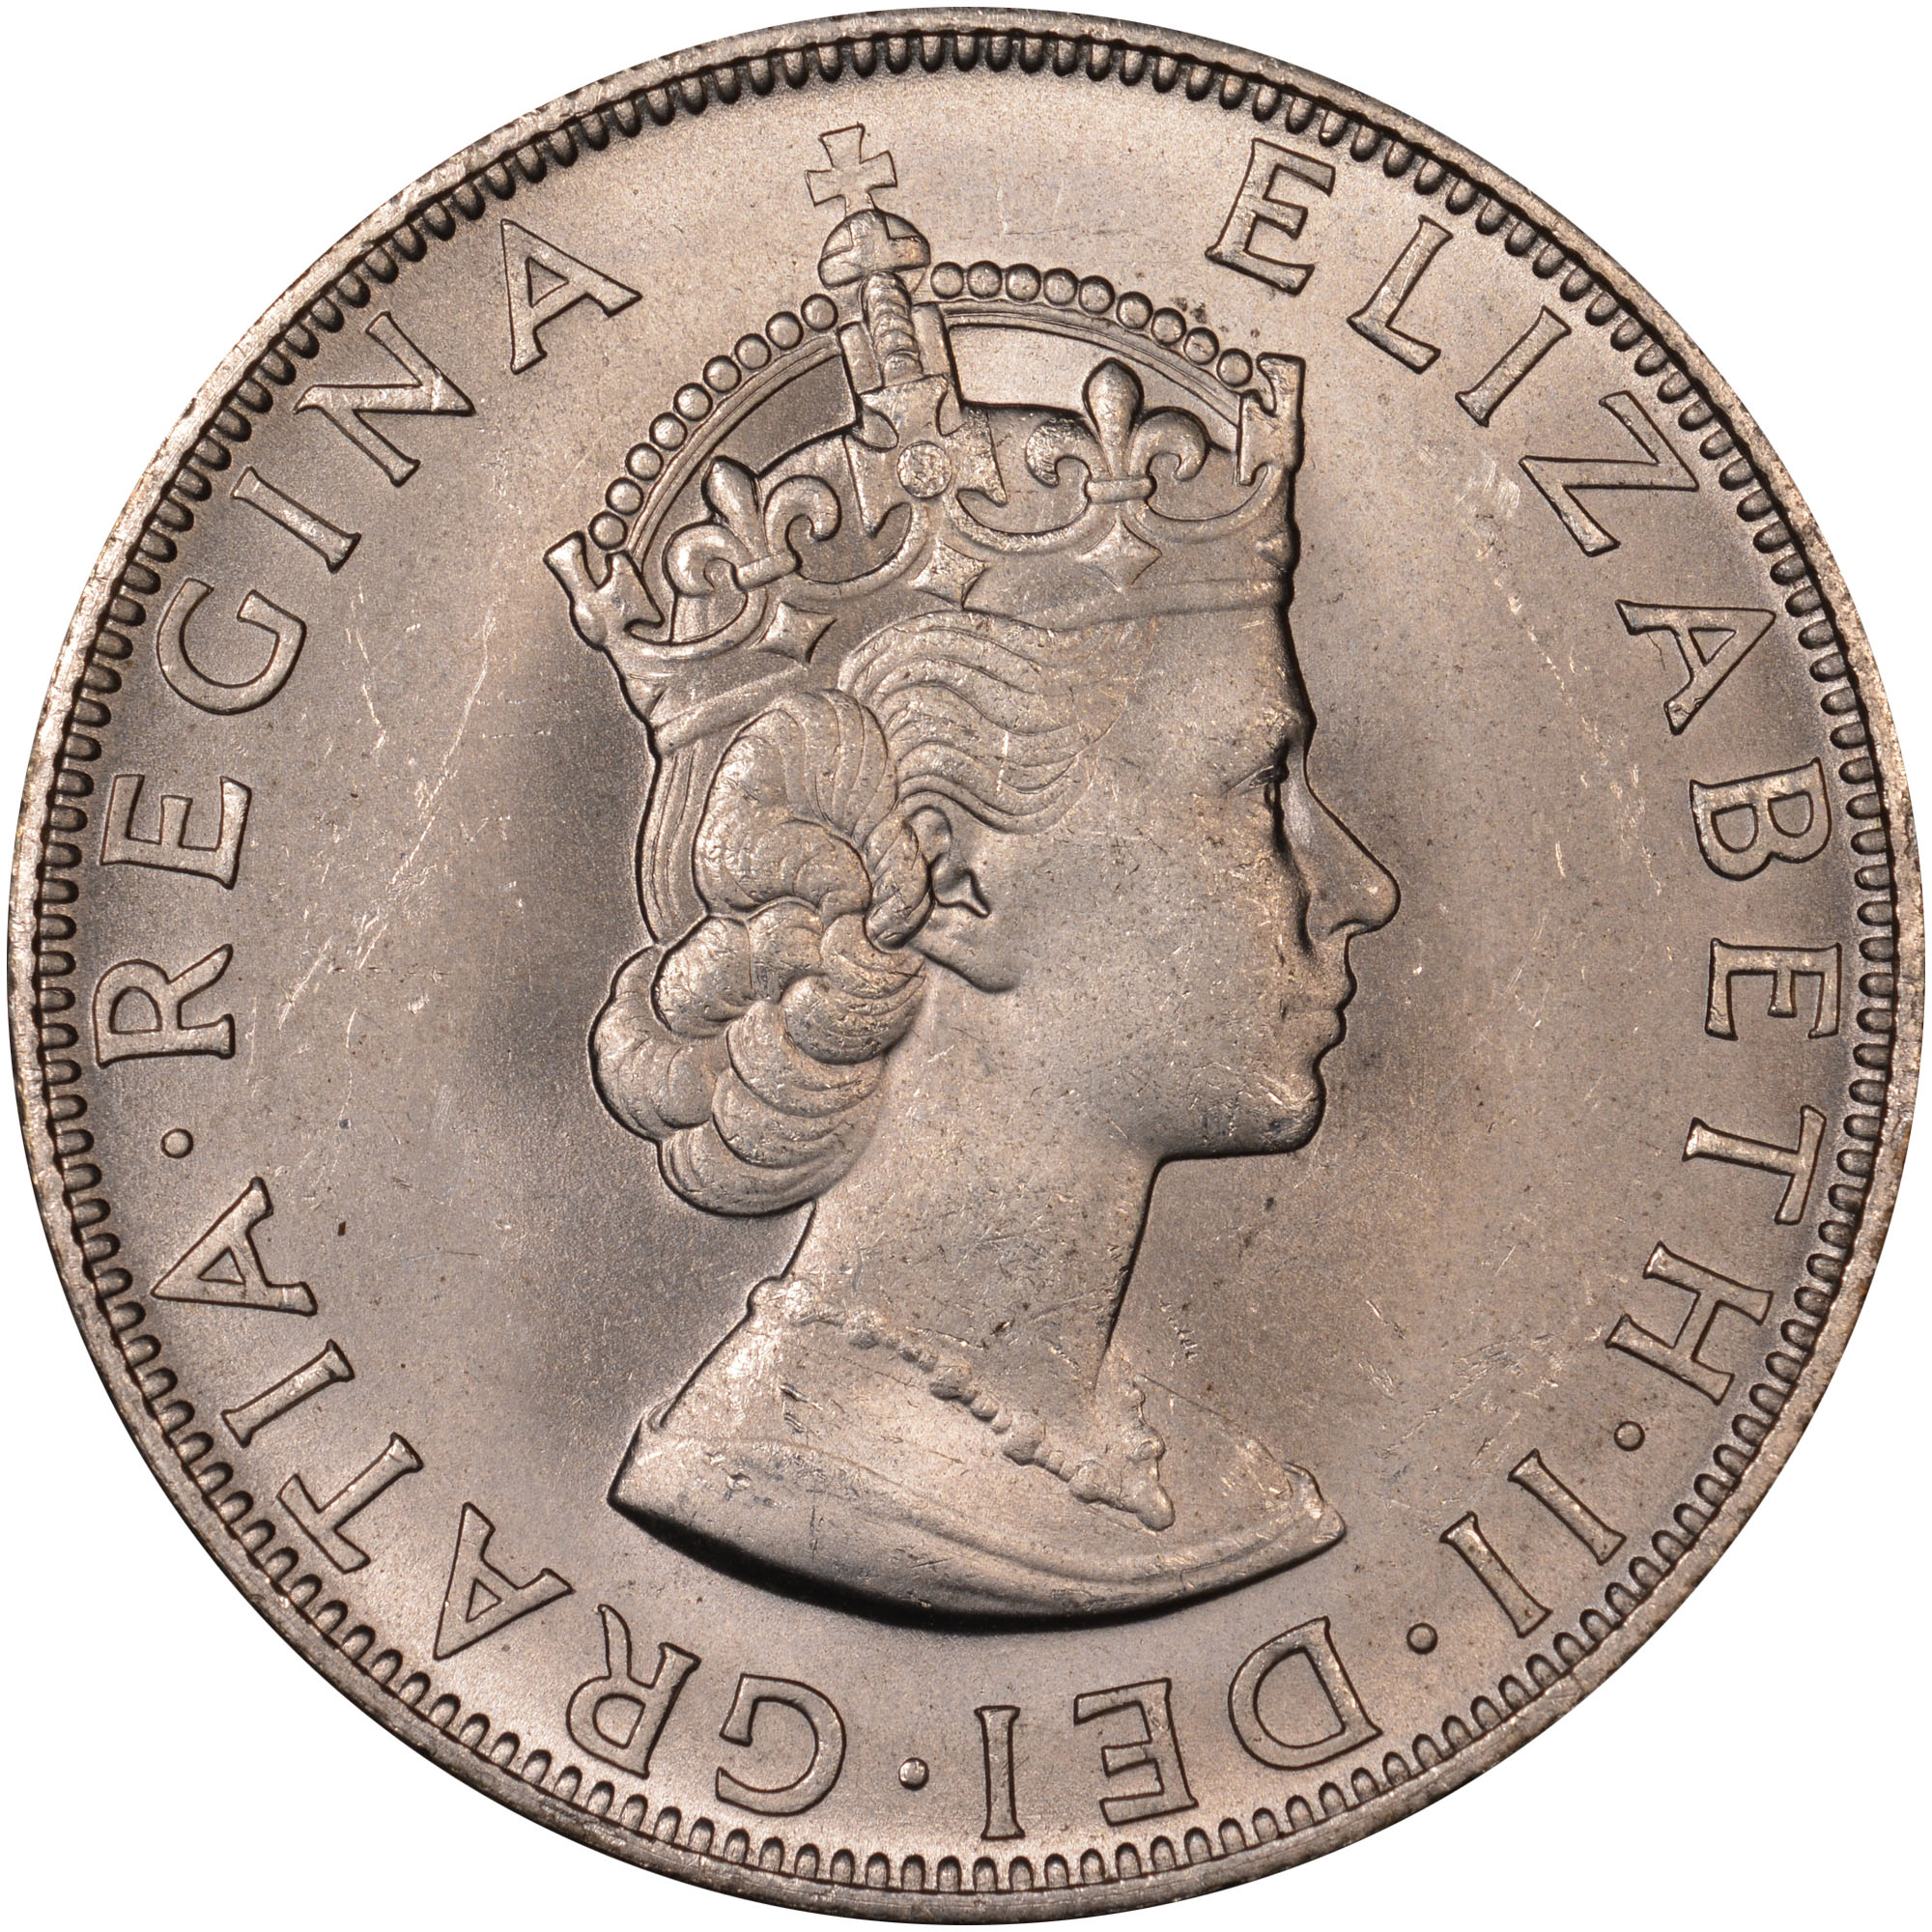 1964 Bermuda Crown obverse